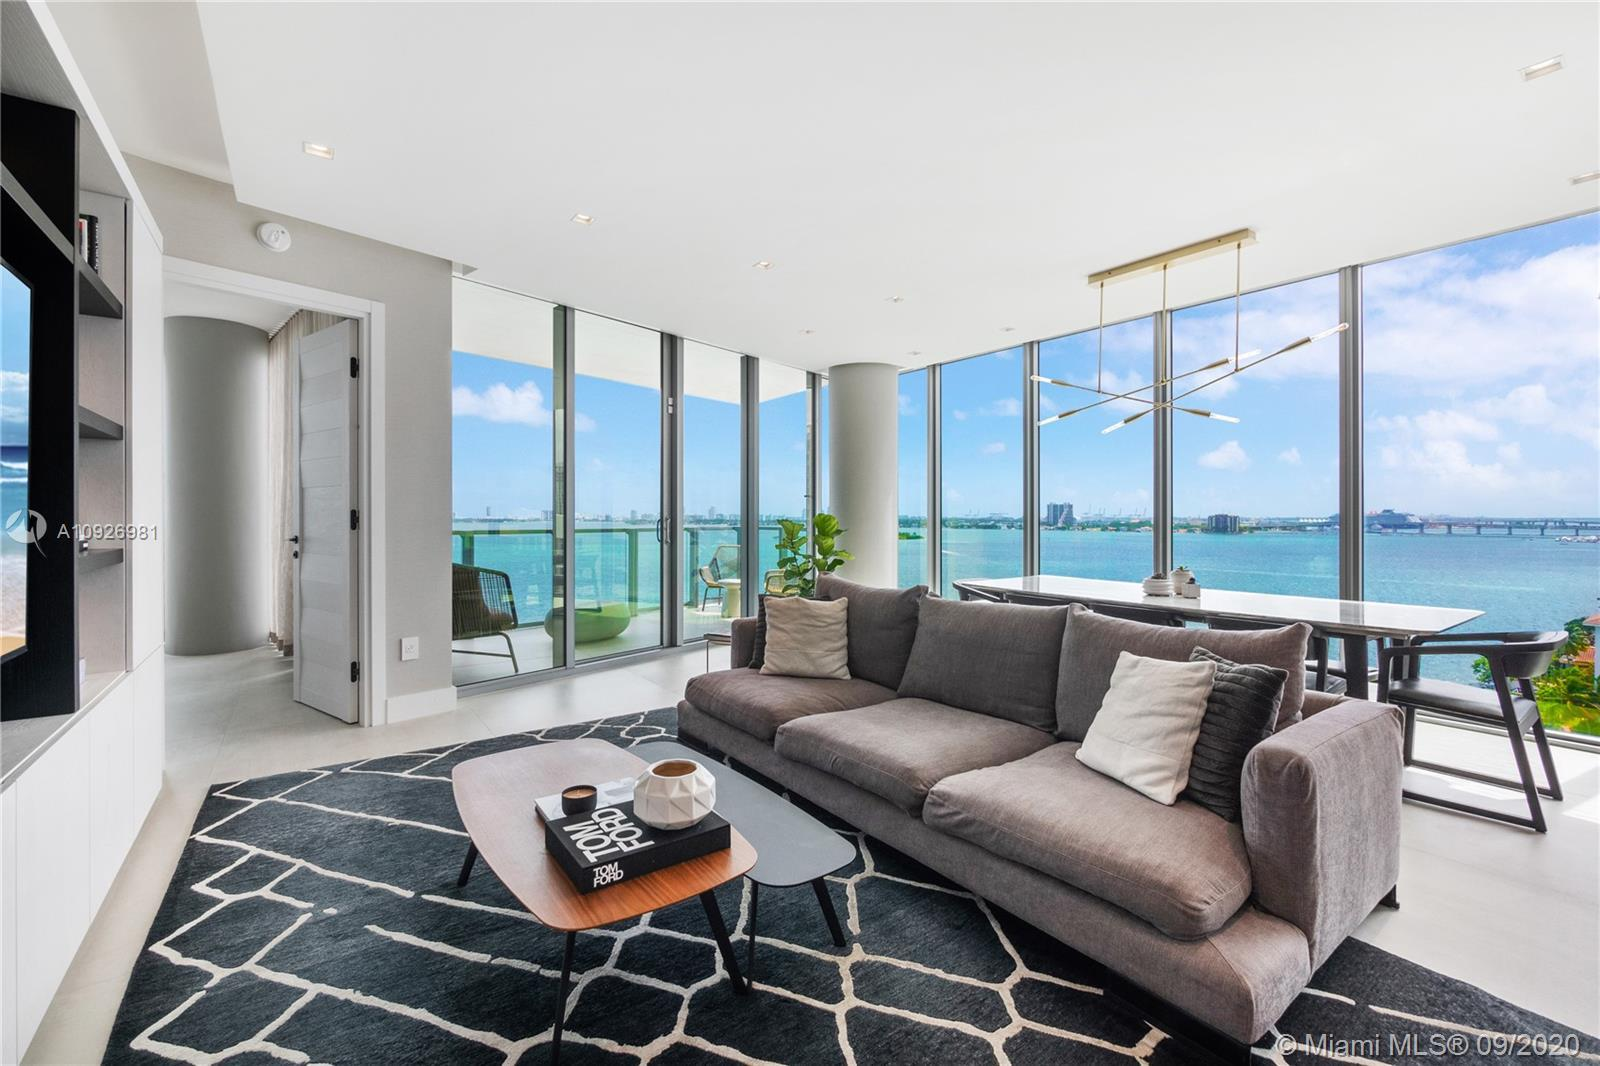 Magnificent 3bed+den/4bath unit in Biscayne Beach Condo, one of the most sought-out buildings in Mia